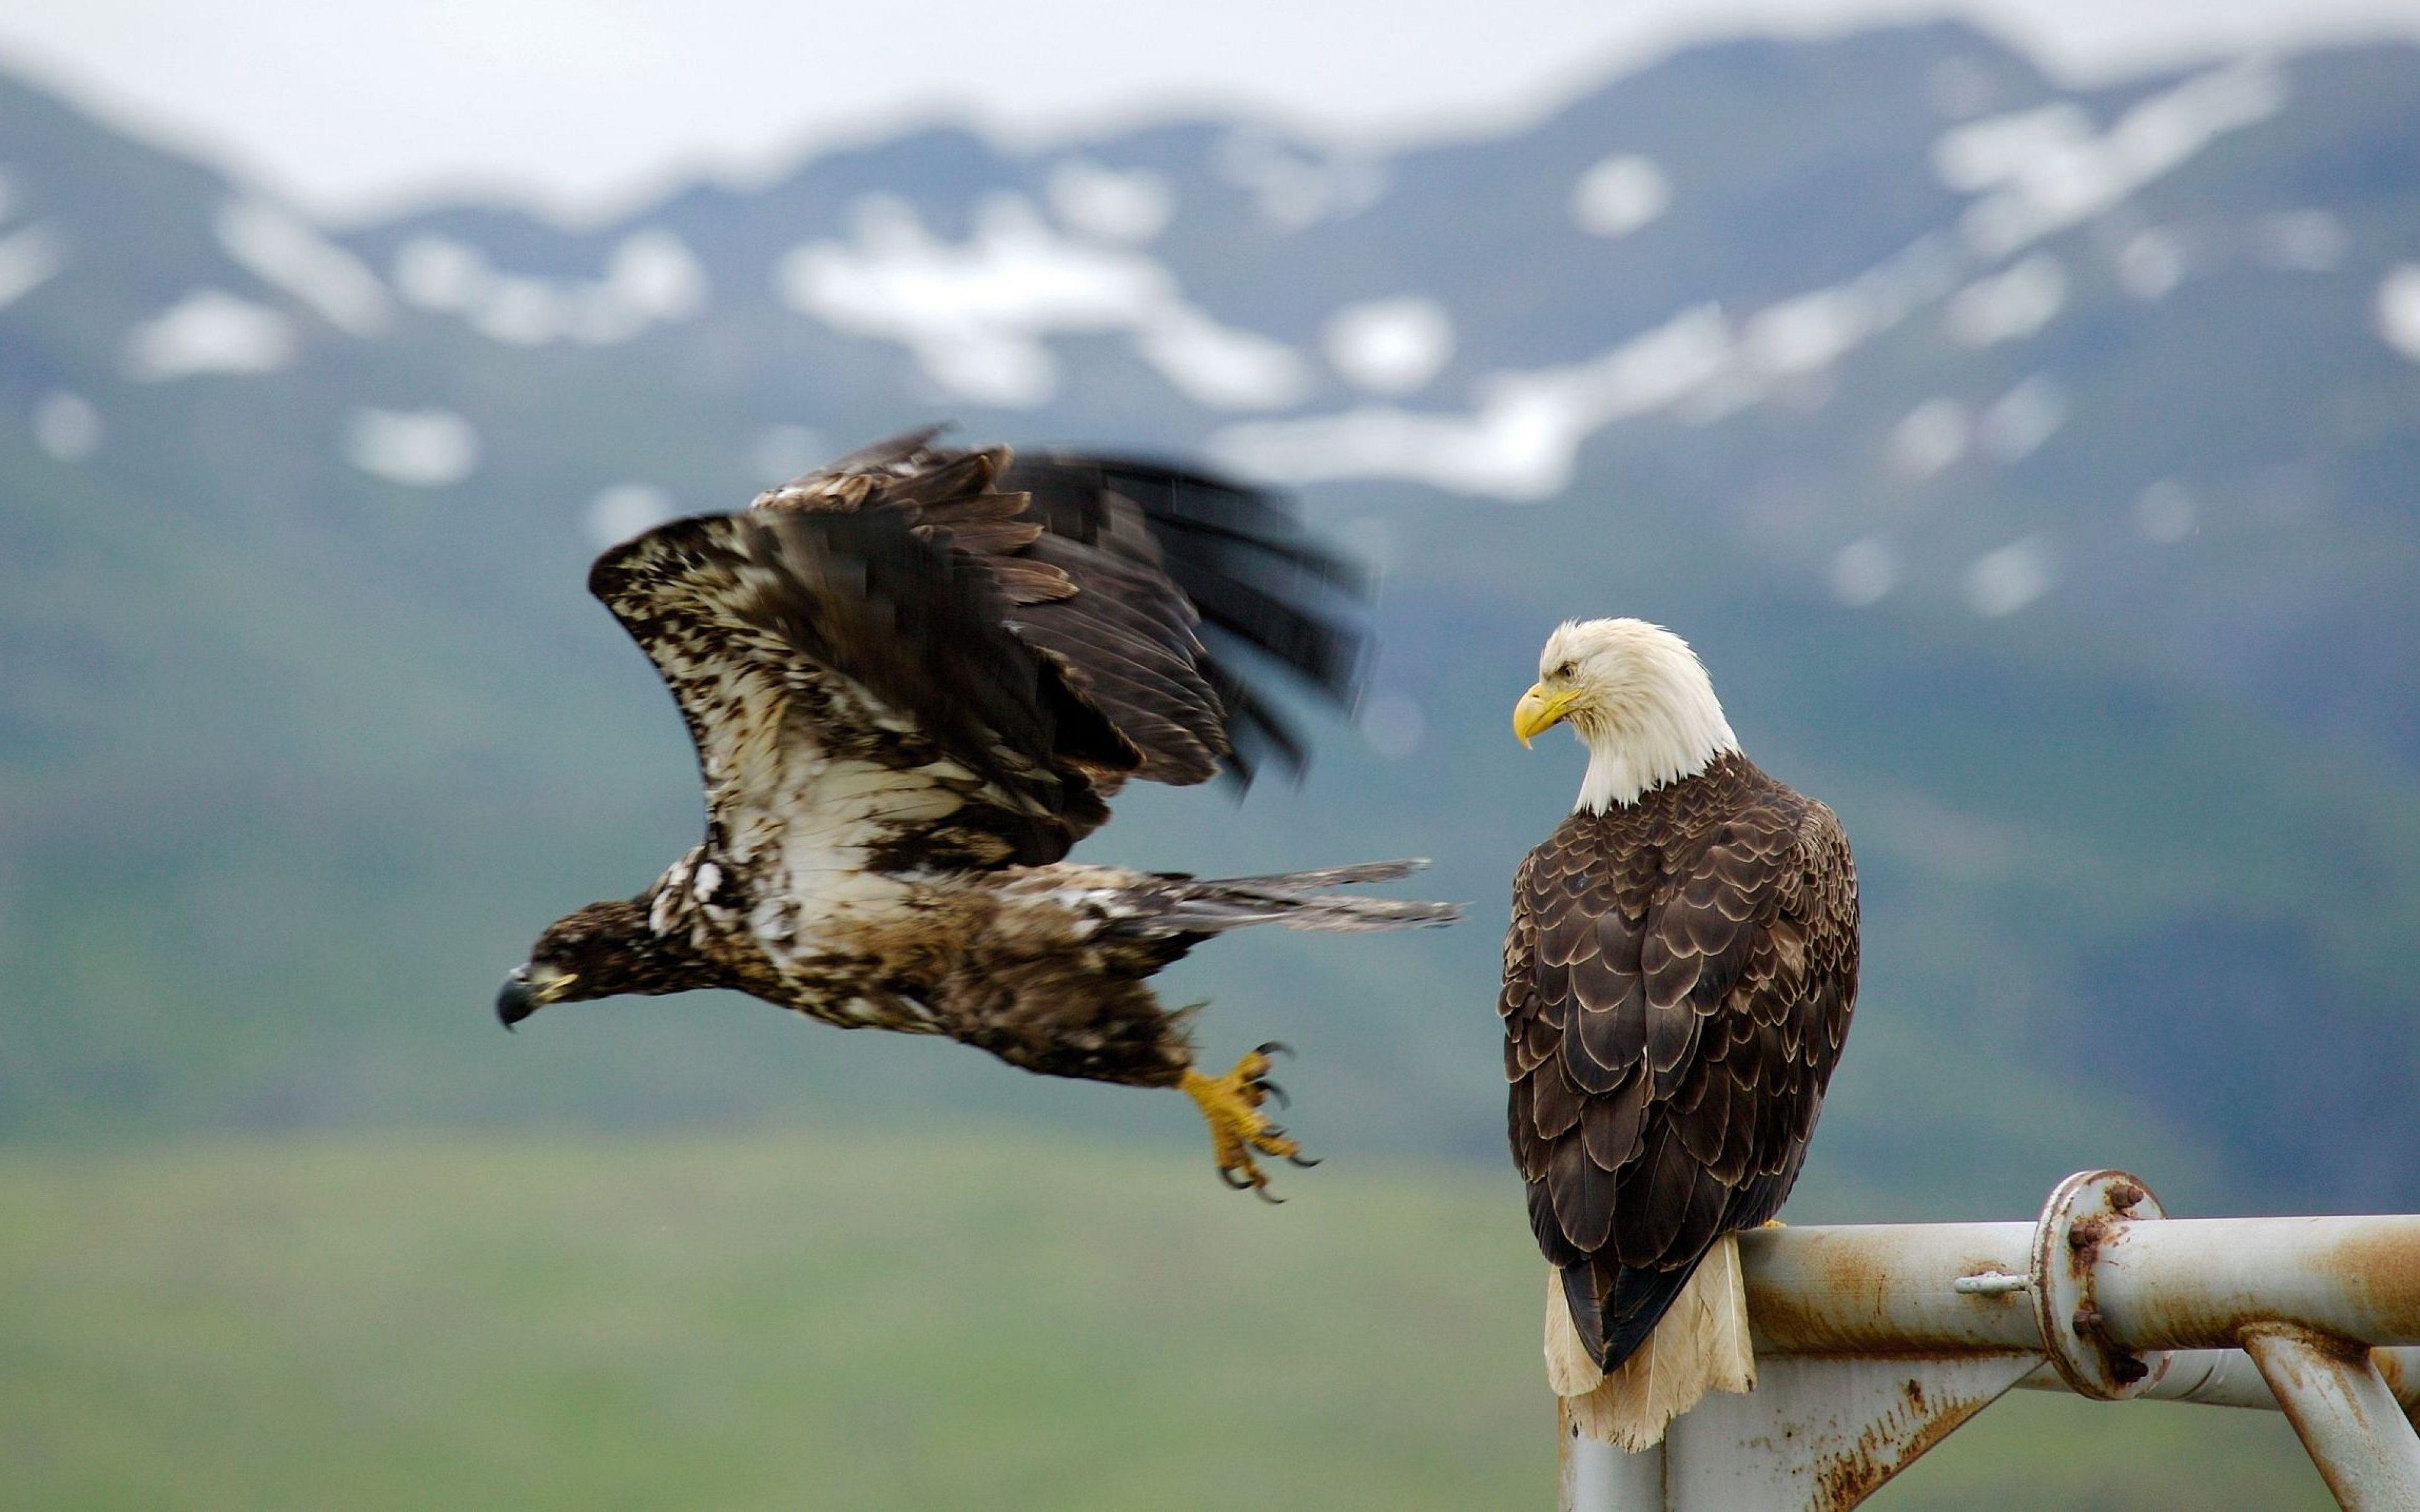 Falcon Wallpapers High Quality | Download Free Baby Eagle Bird